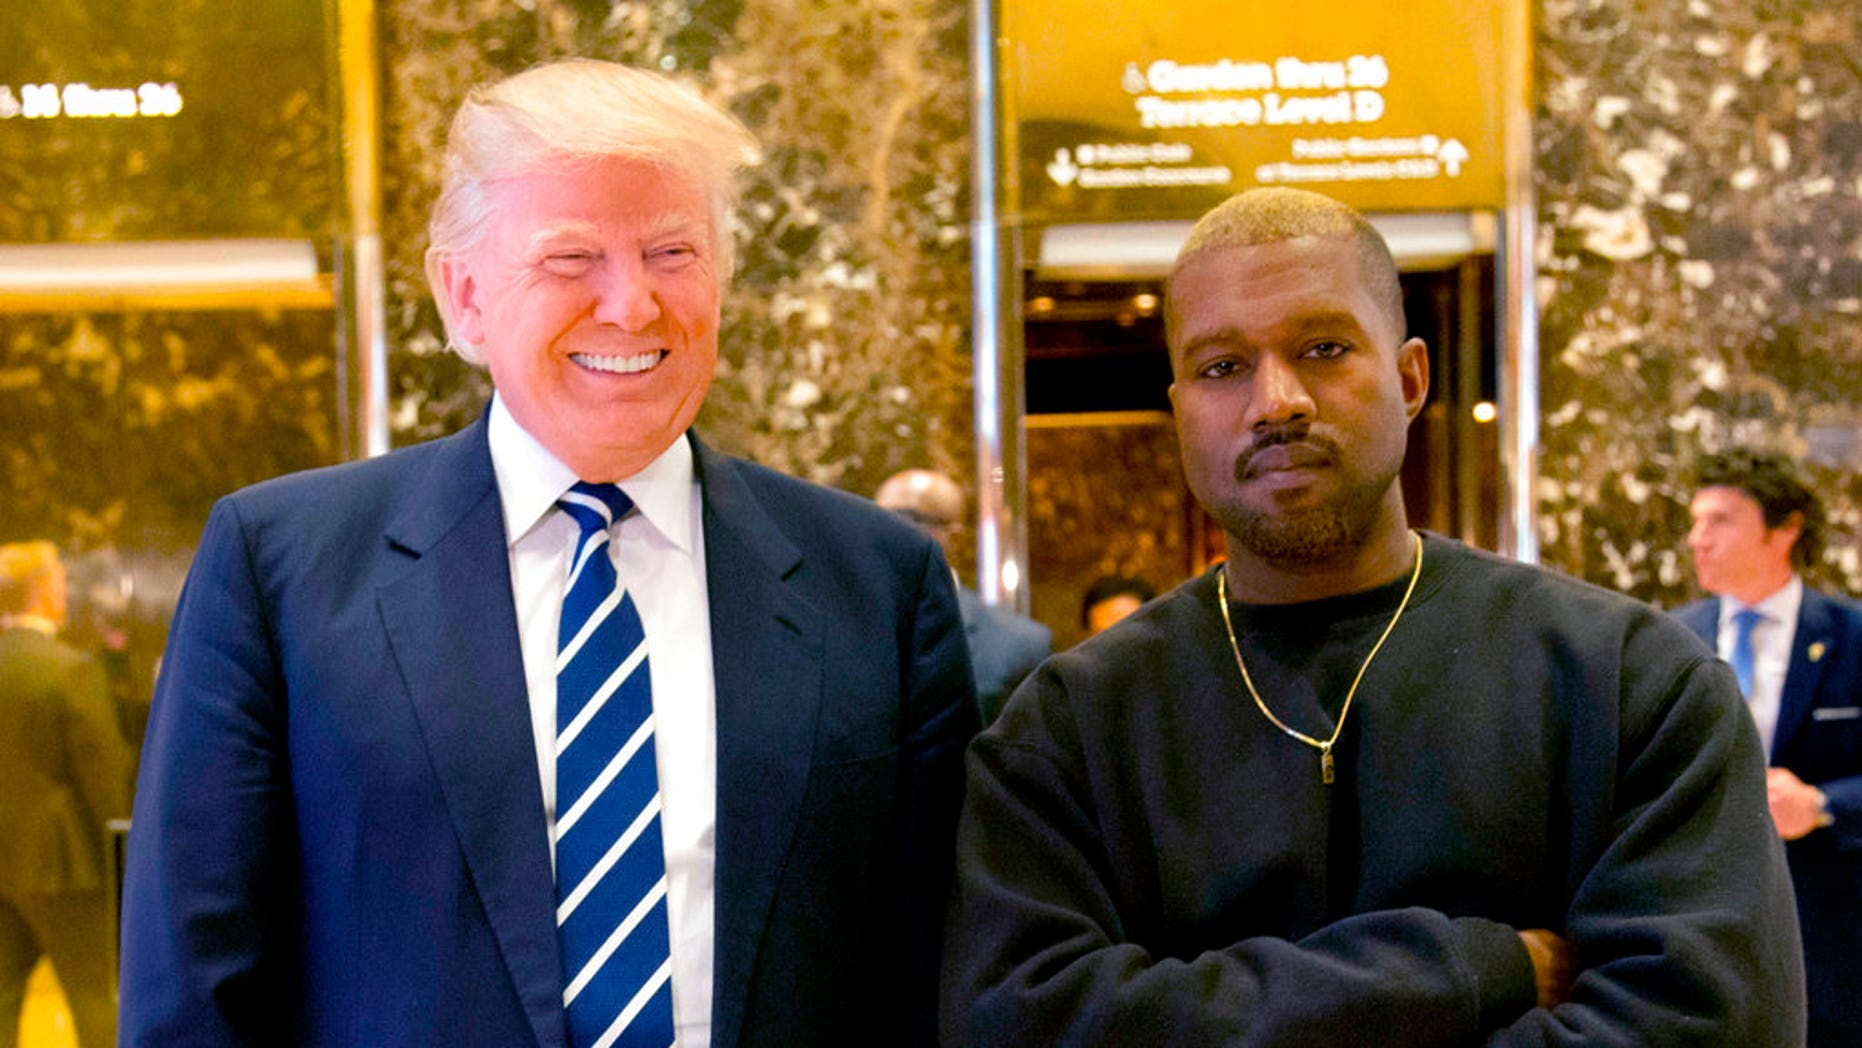 Then-President-elect Donald Trump and Kanye West pose for a photo in the lobby of Trump Tower in New York City, Dec. 13, 2016.